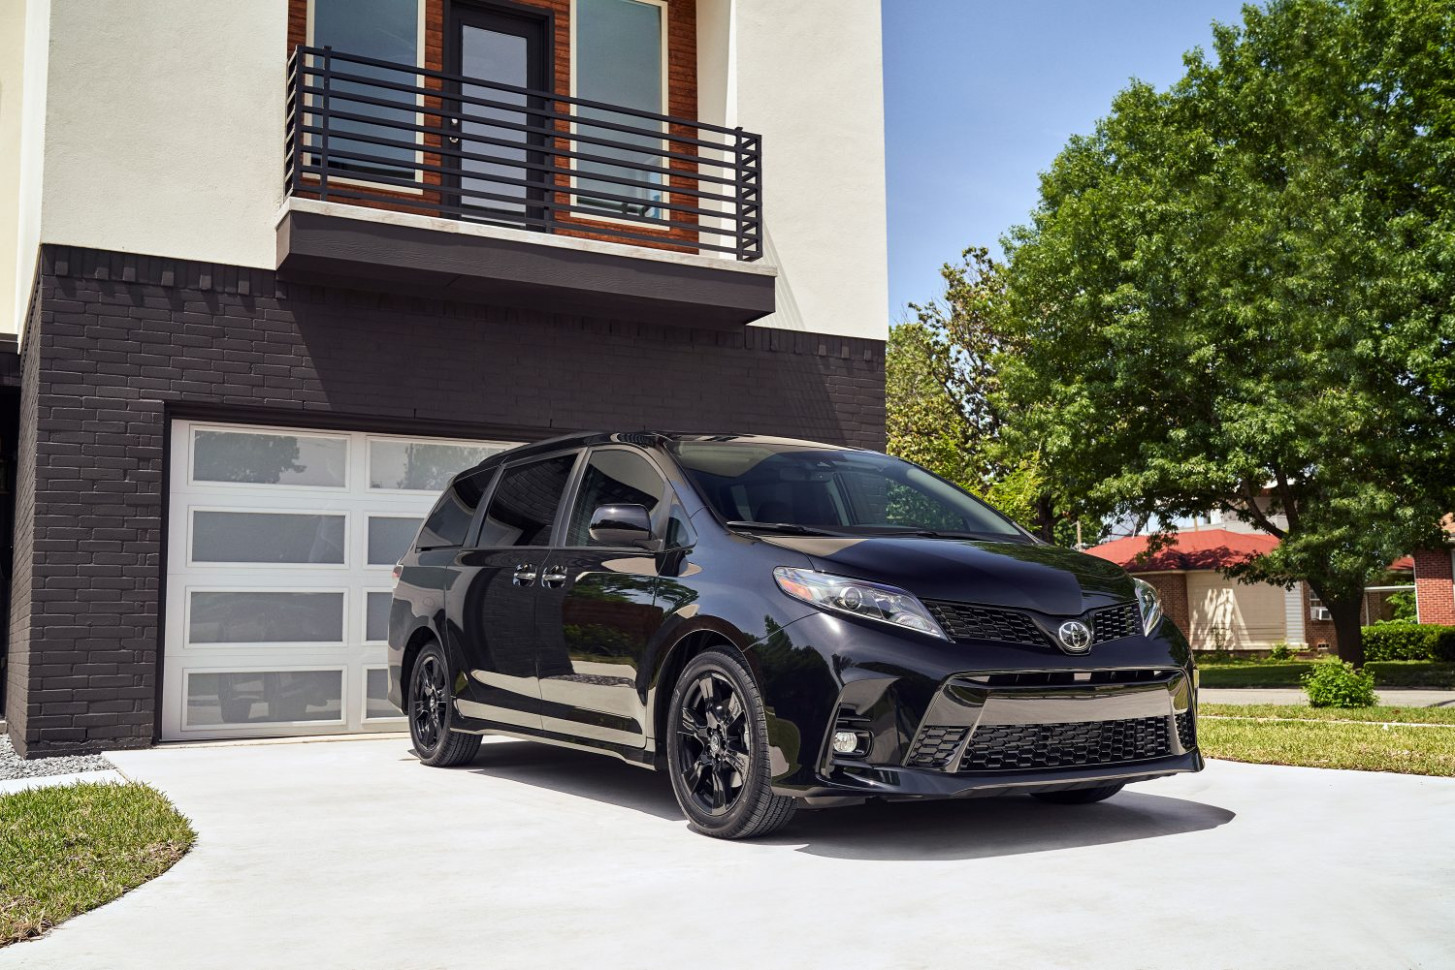 8 Toyota Sienna - All-New Nightshade Edition Added - Toyota USA ..